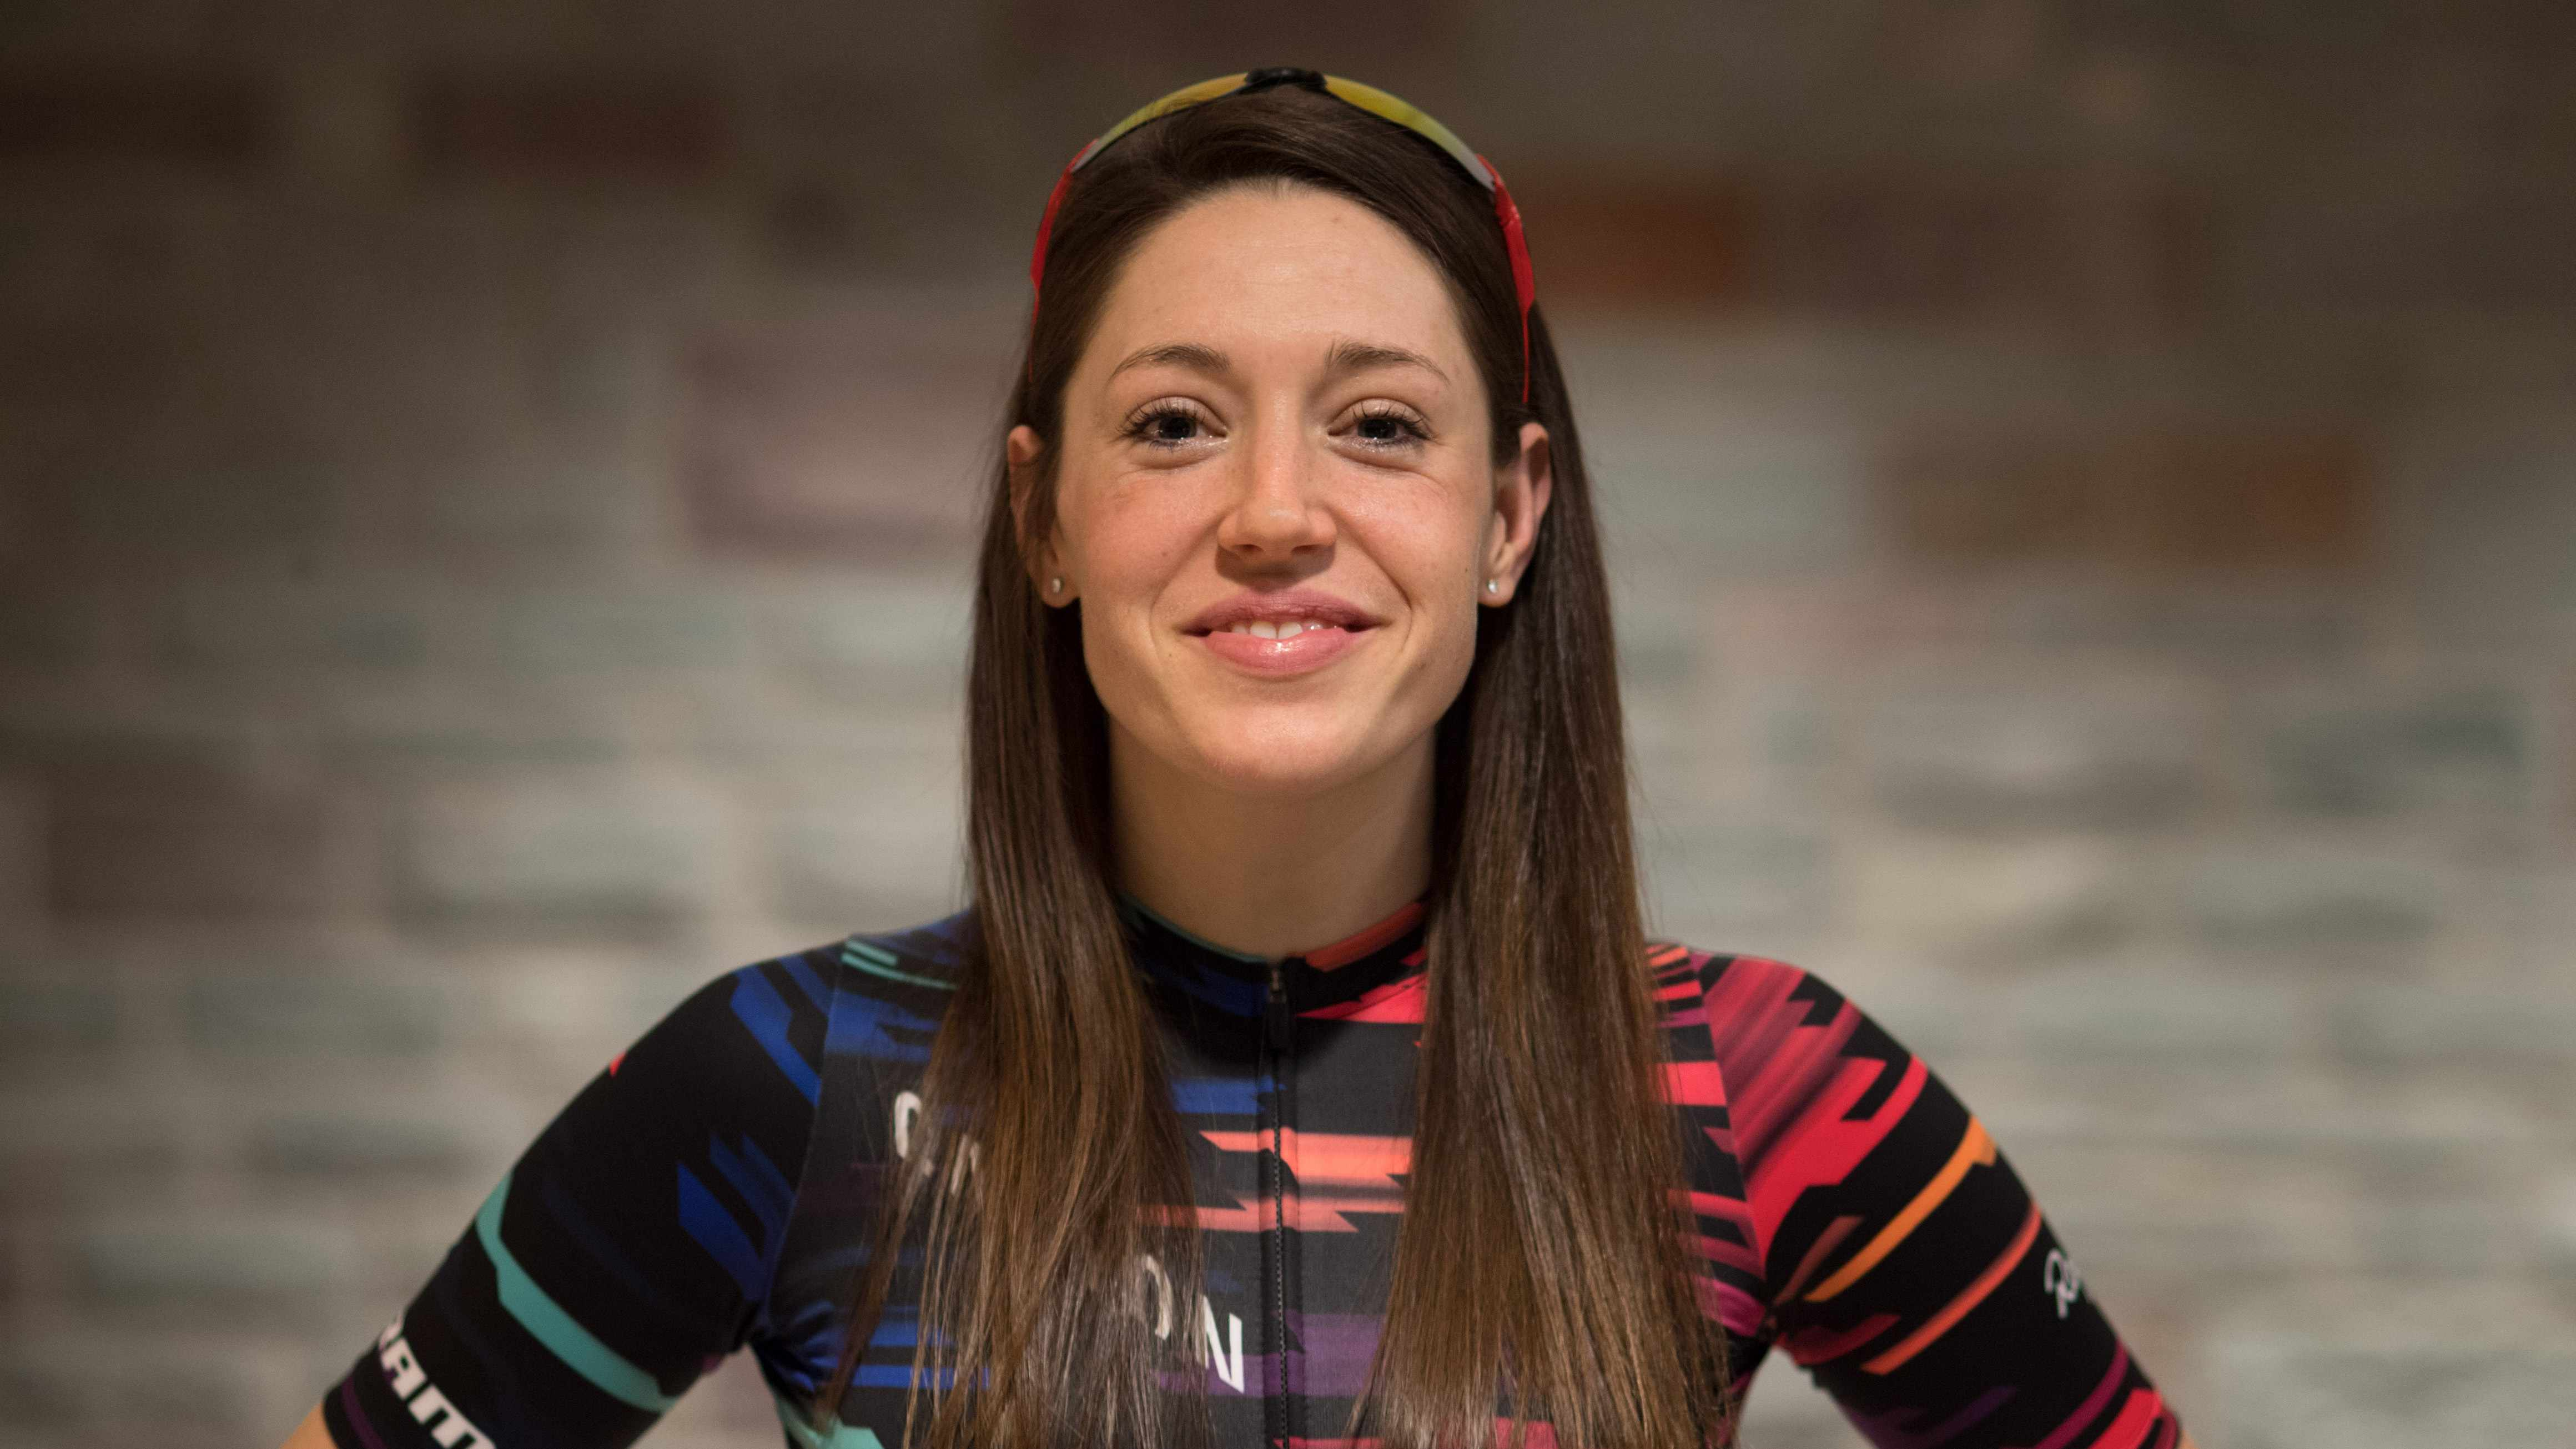 Tanja Erath is the winner of the Canyon//SRAM academy 2017